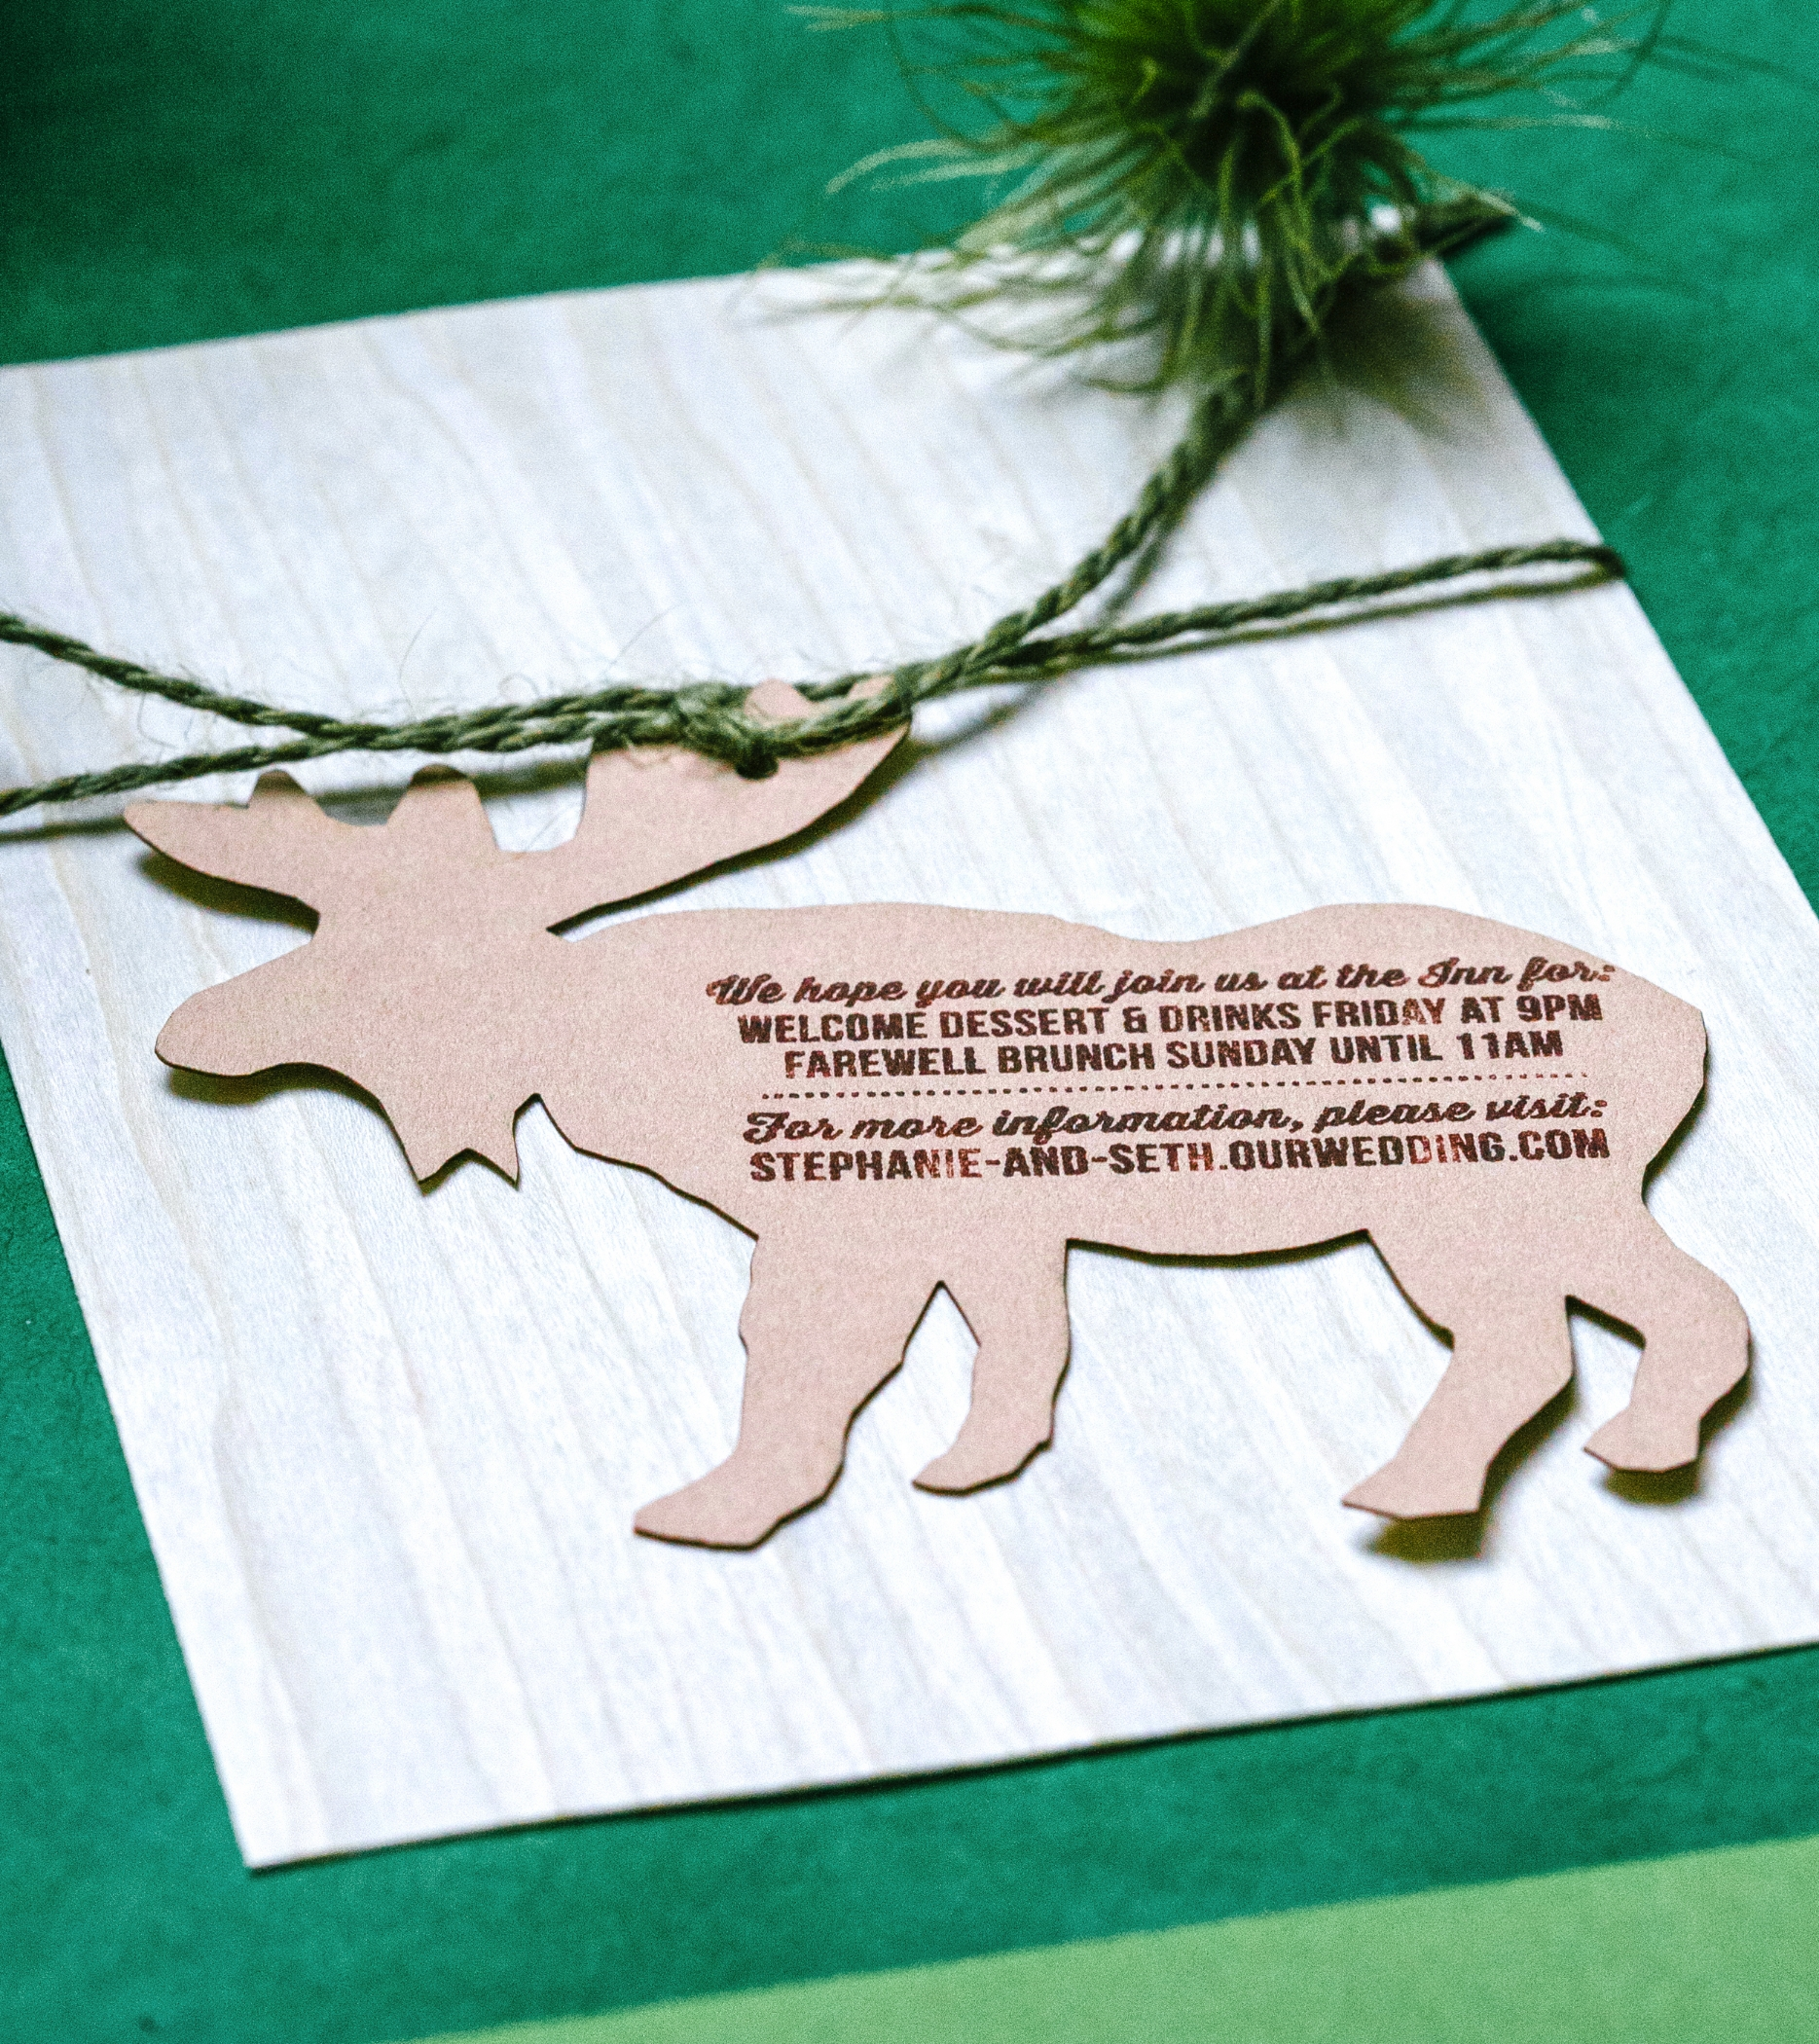 A laser cut moose card was made to handle the other events of the weekend and the couple's website URL.